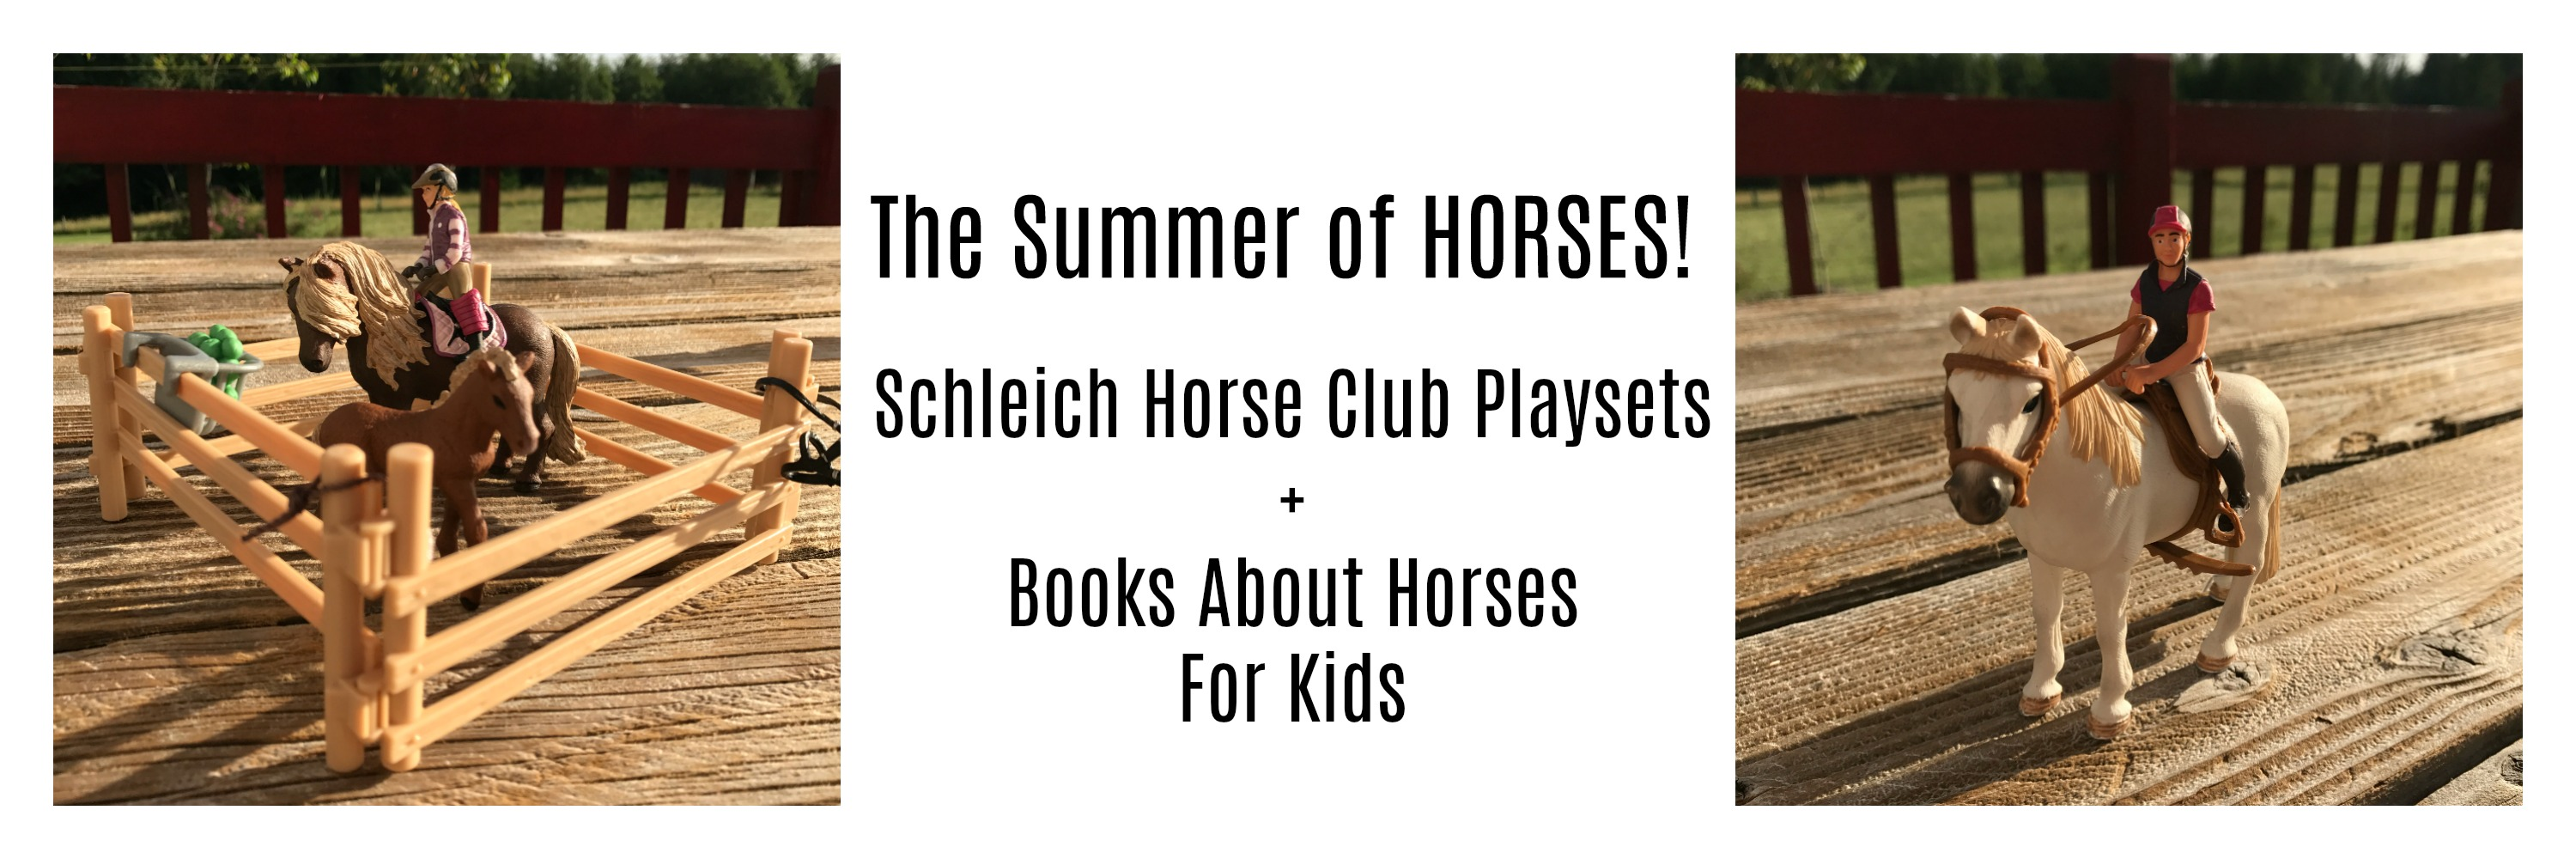 Play And Learn With Schleich Horse Play Sets Books About